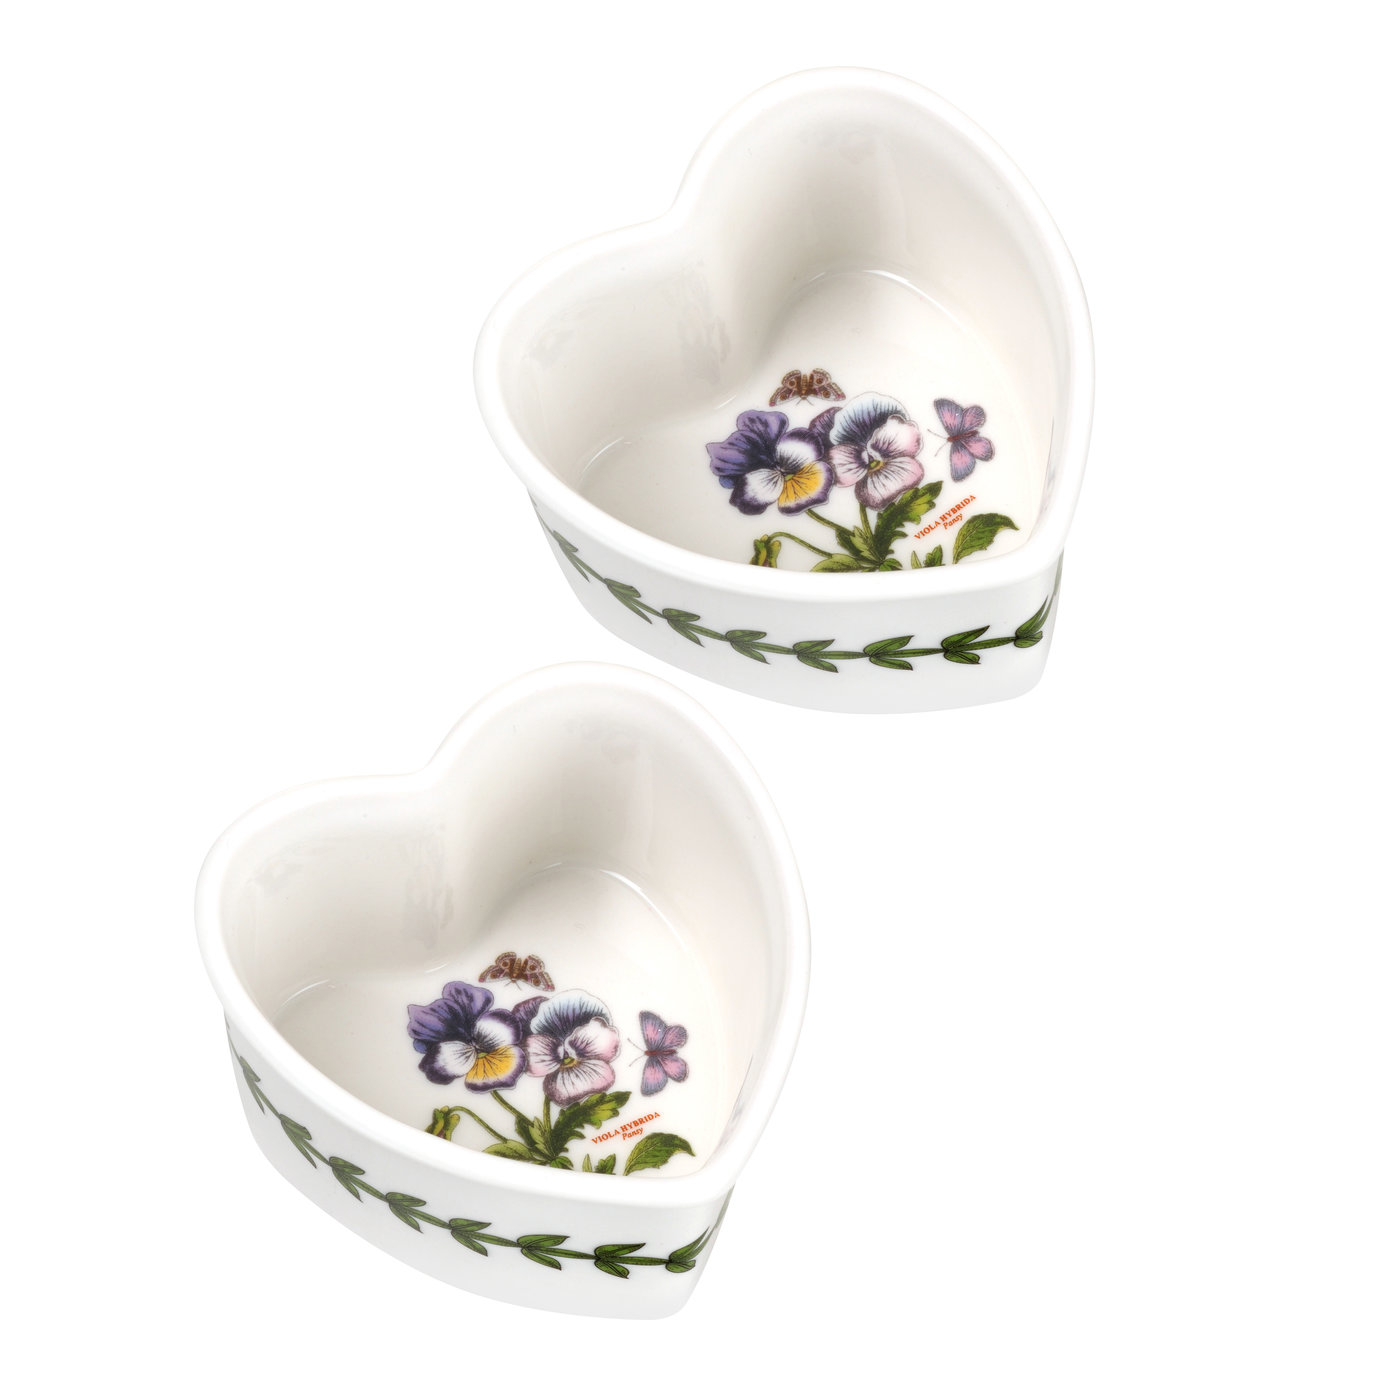 Botanic Garden Set of 2 Heart-Shaped Ramekins (Pansy) image number 0